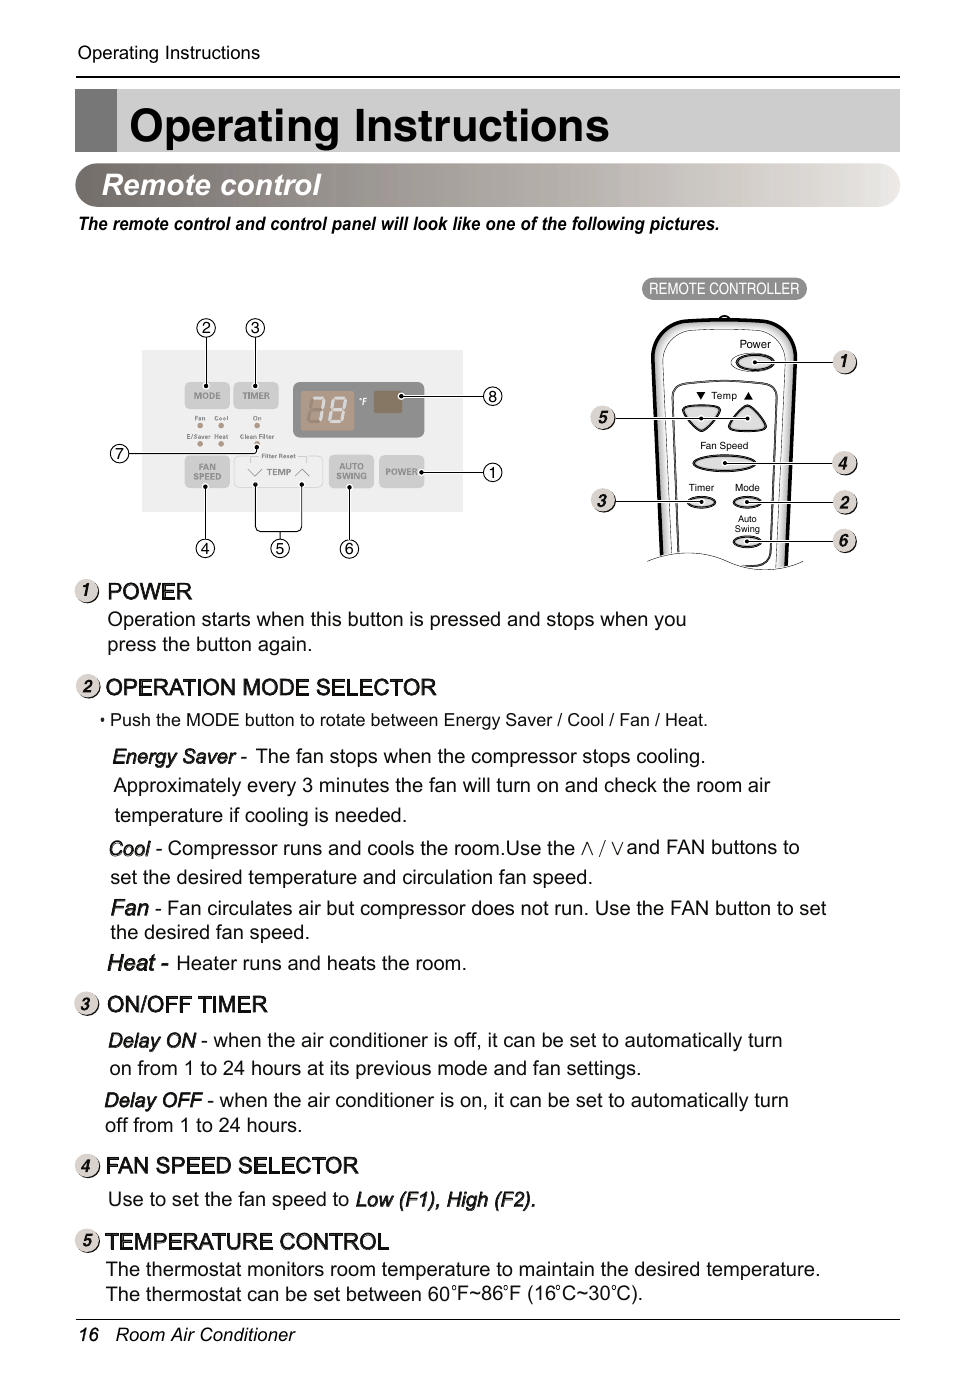 Operating instructions, Remote control, Power | LG LW2414HR